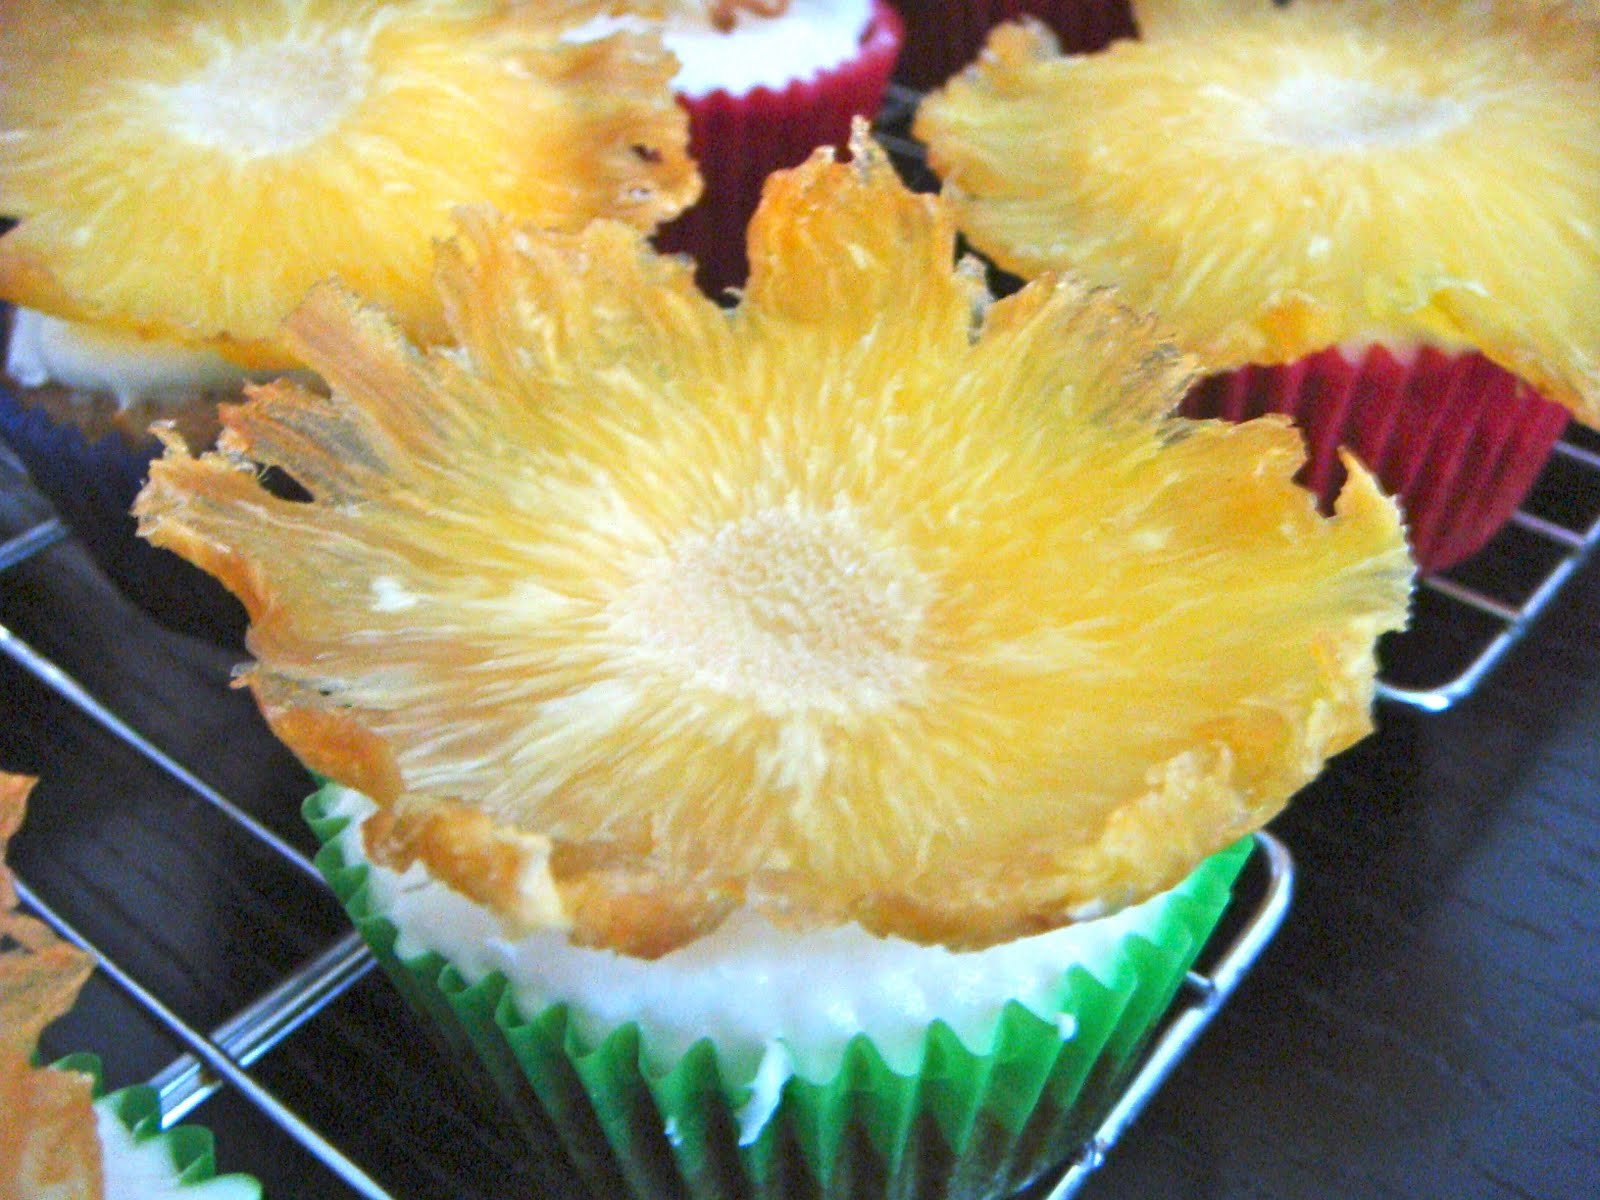 ... treat might i suggest these hummingbird cupcakes the cupcake batter